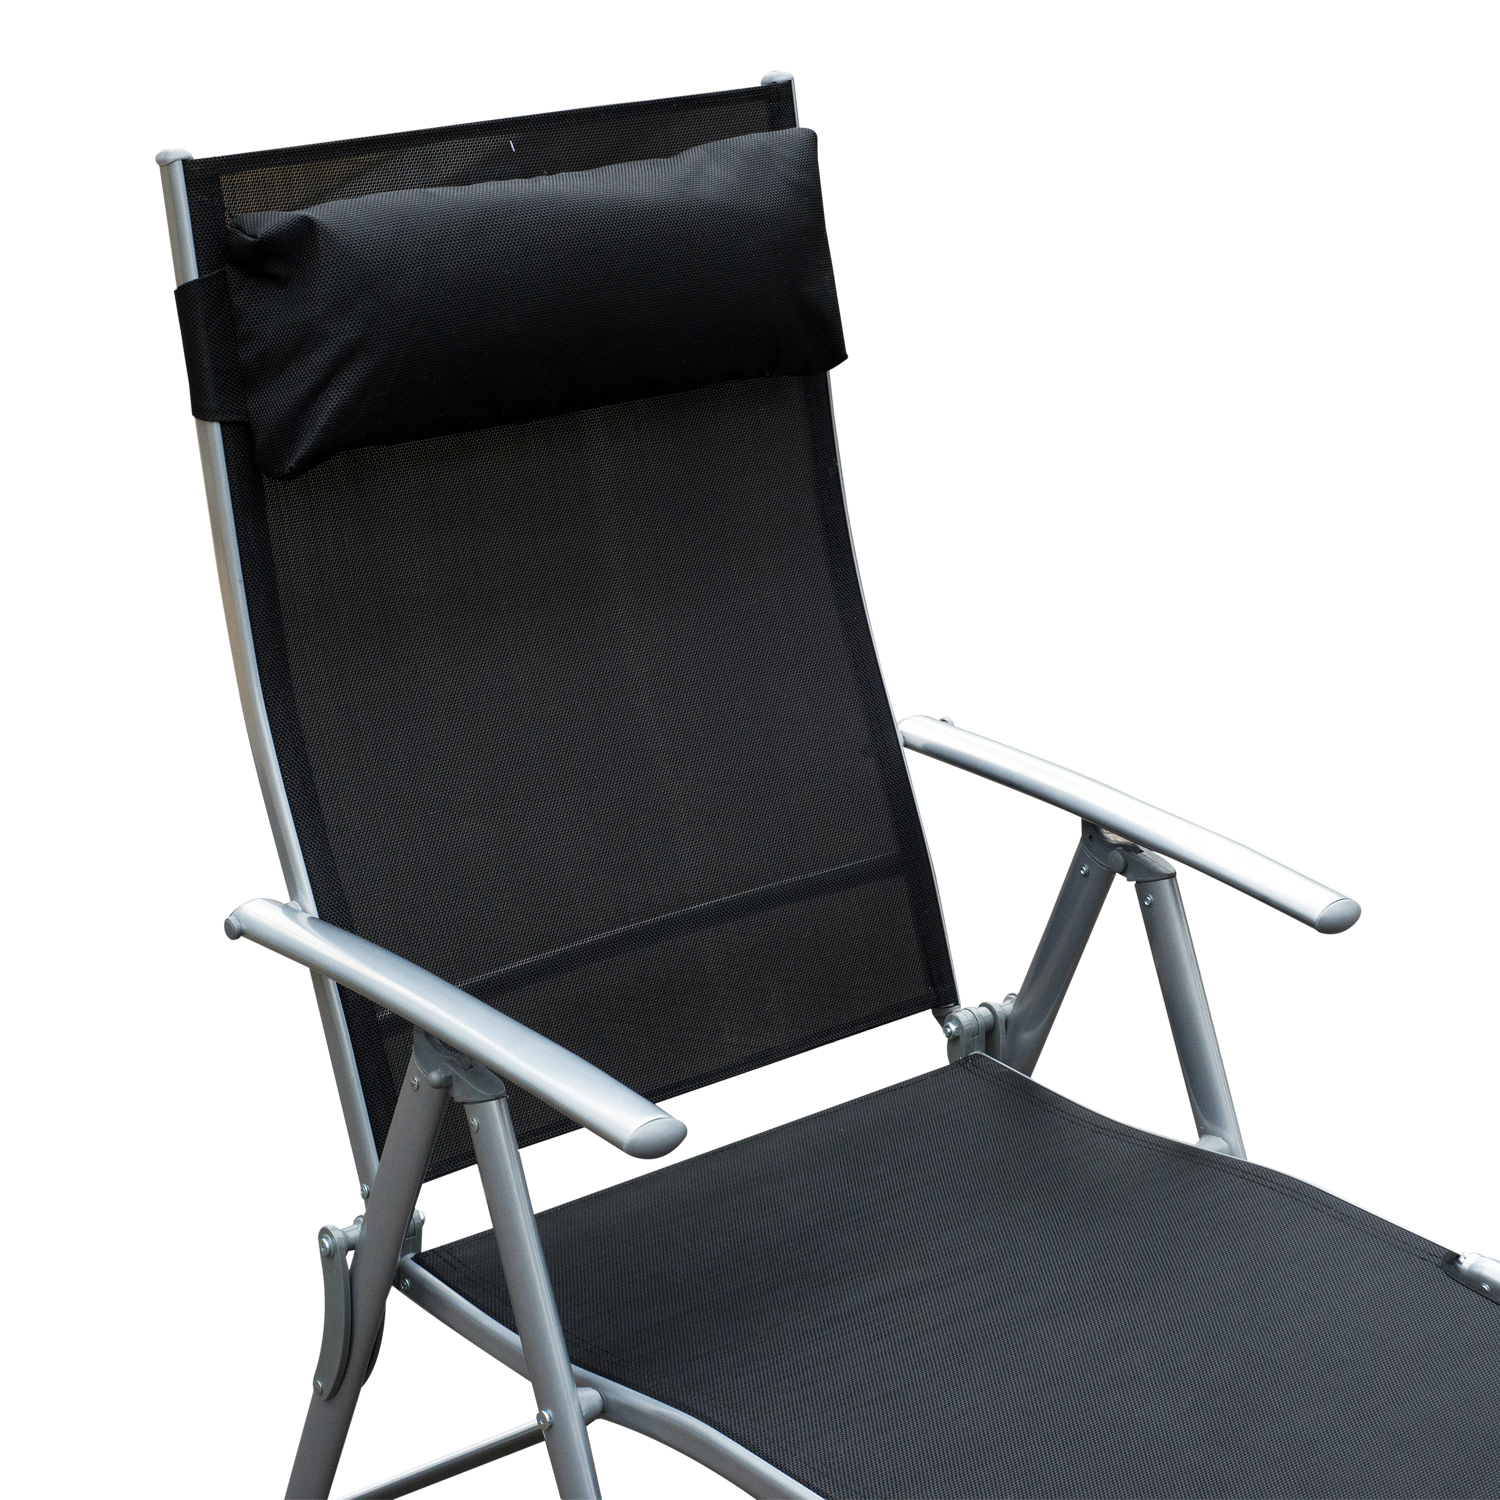 Lawn Chair Lounger Chaise Lounge Chair Folding Pool Beach Yard Adjustable